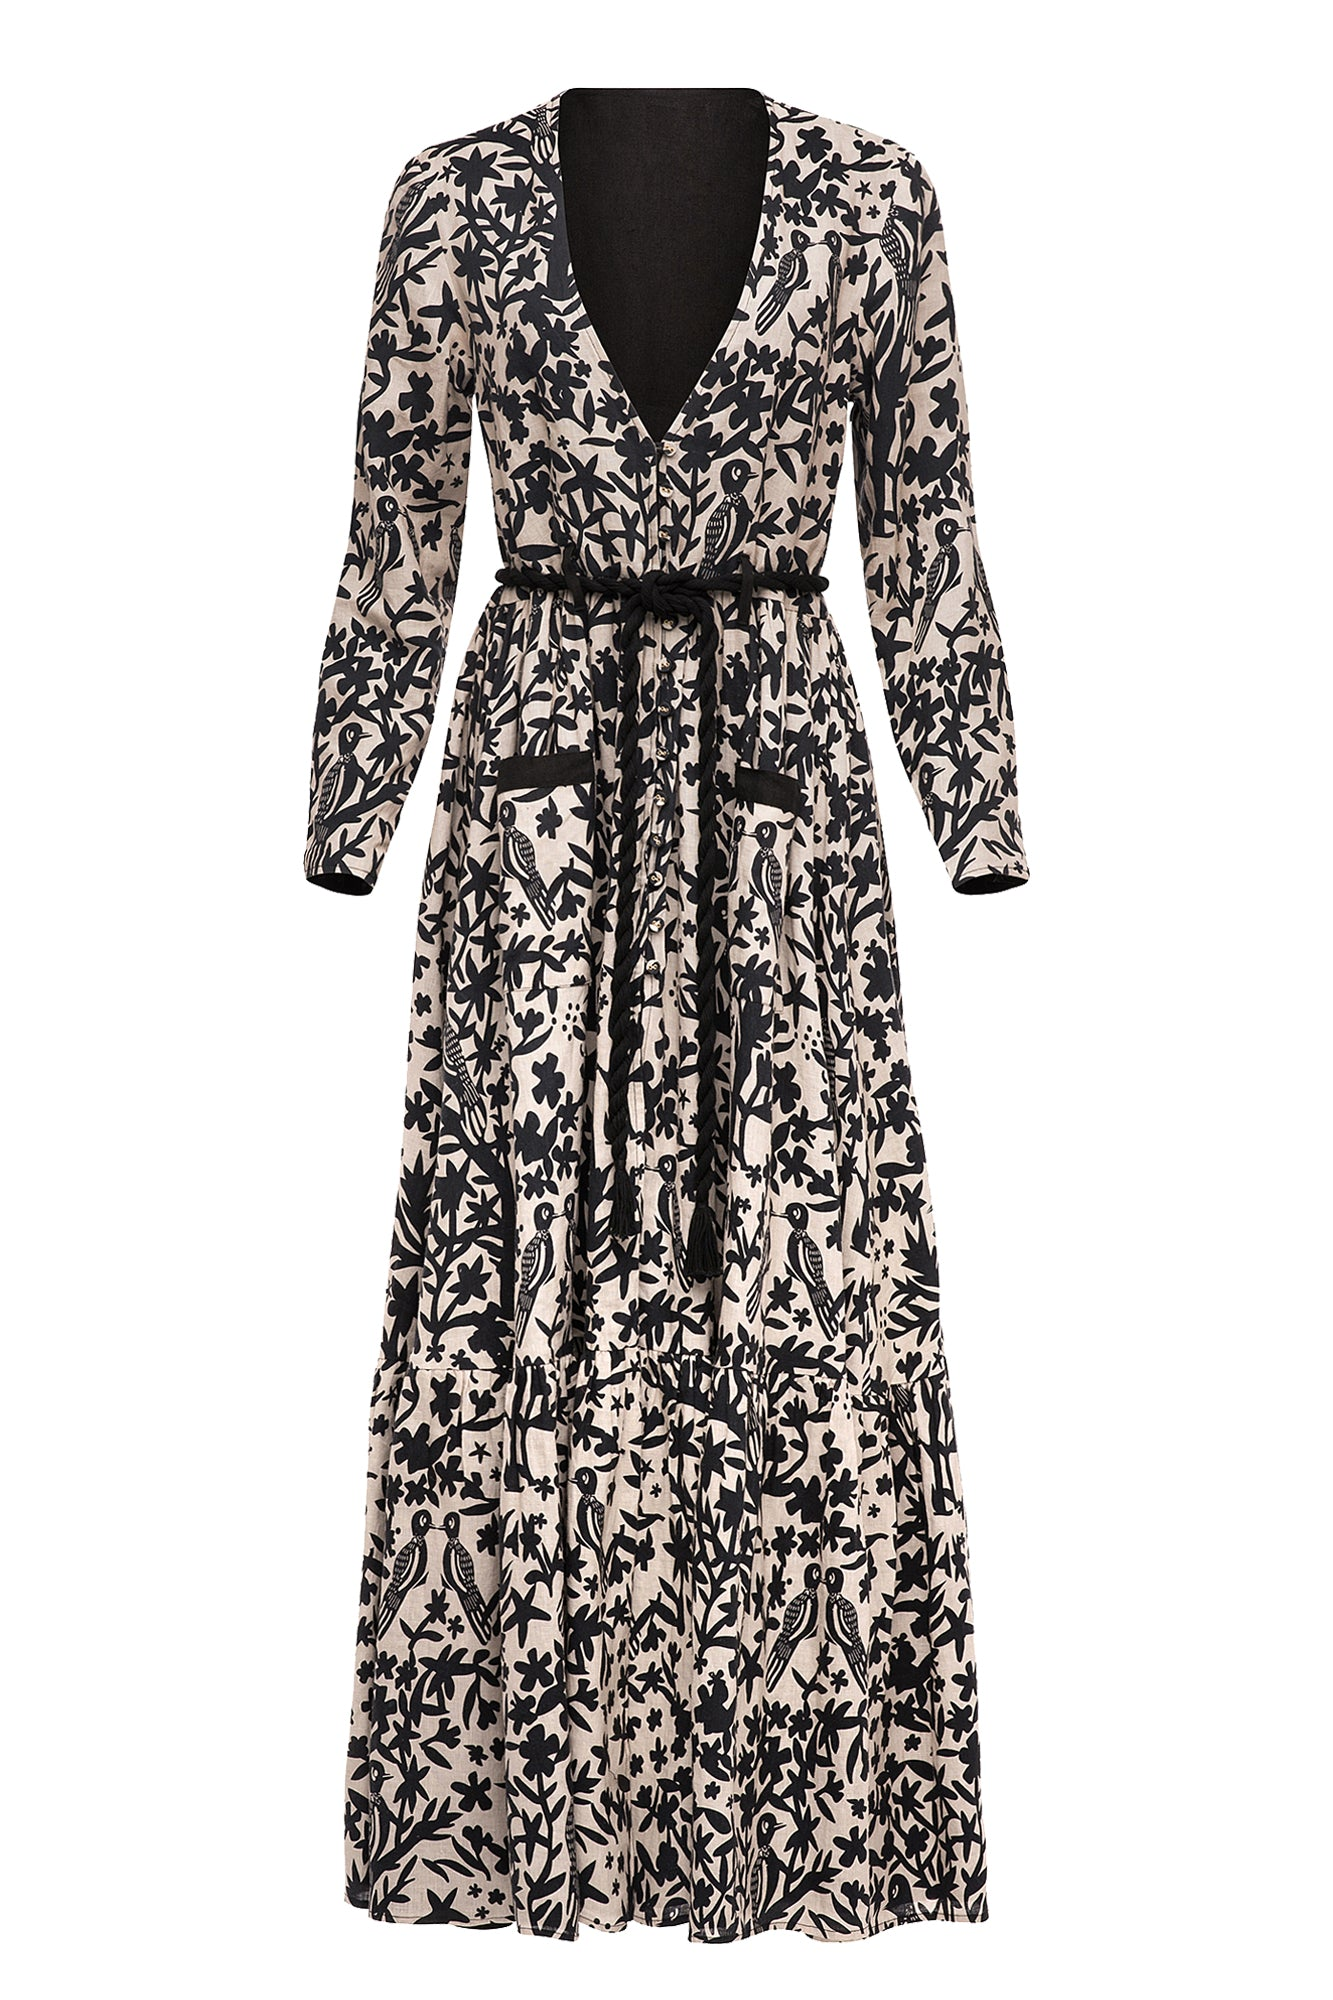 Carolina K Reversible Rosa Robe Off White/Black